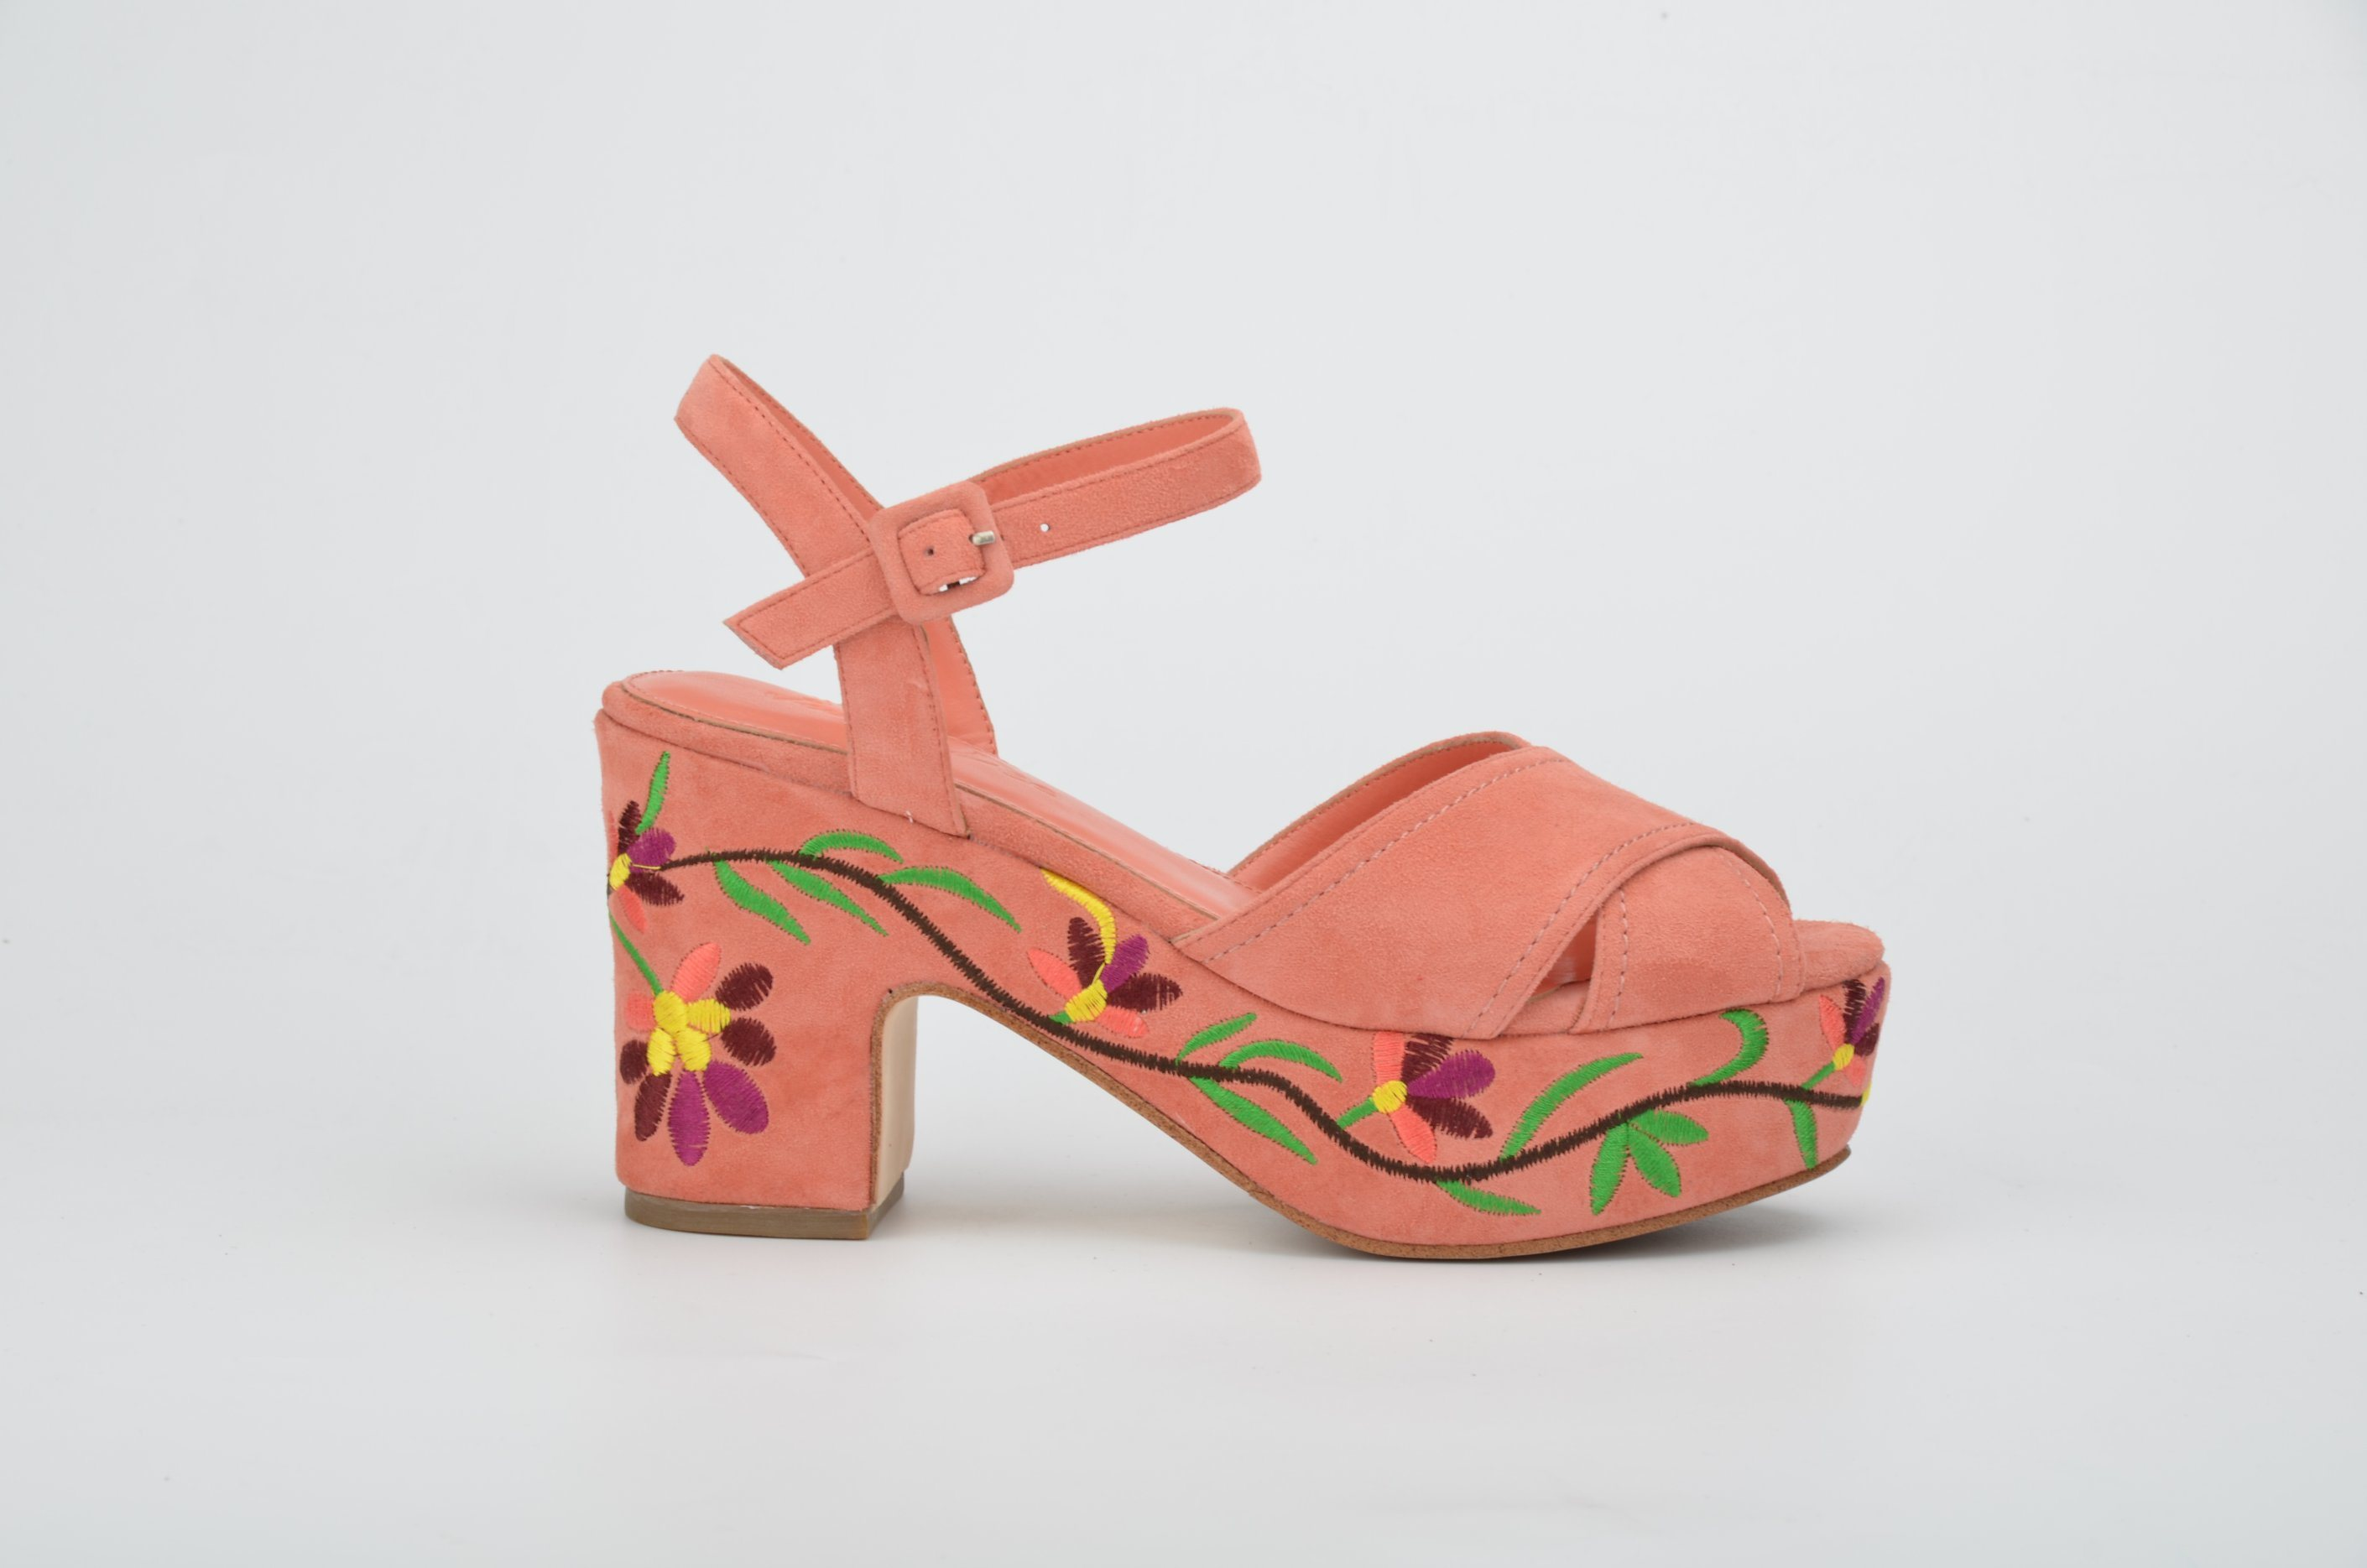 Lady Suede Leather Shoes High Heels Women Embroidery Platform Sandals